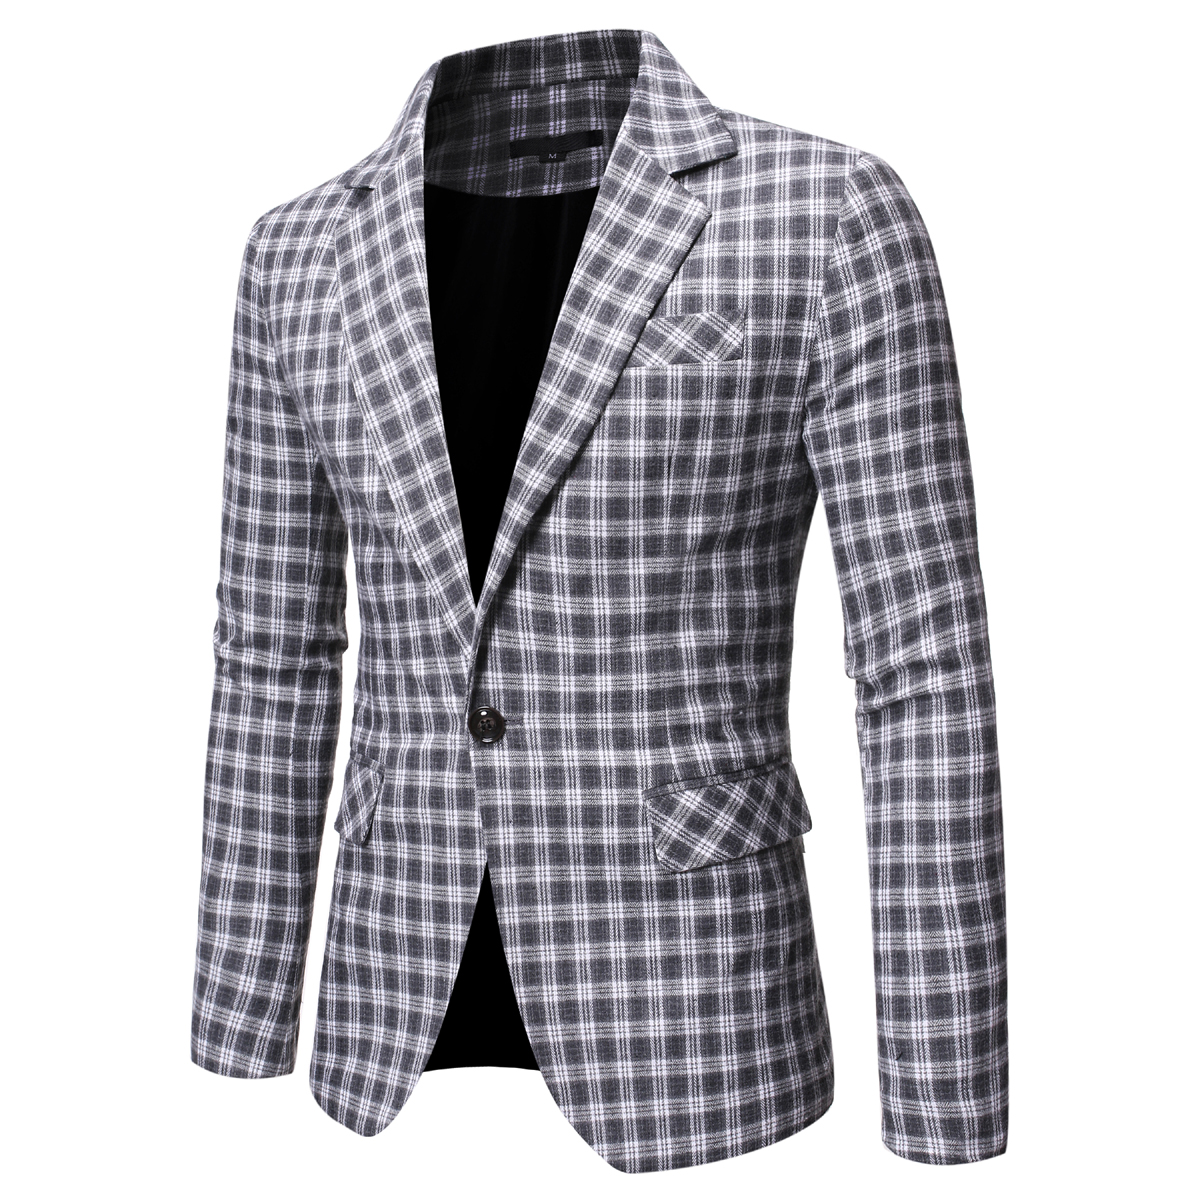 Autumn Winter Mens Suit Jacket 2019 Formal Business Vinatge Plaid Blazers Slim Fit Wedding Party Blazers Jacket Mens Workwear